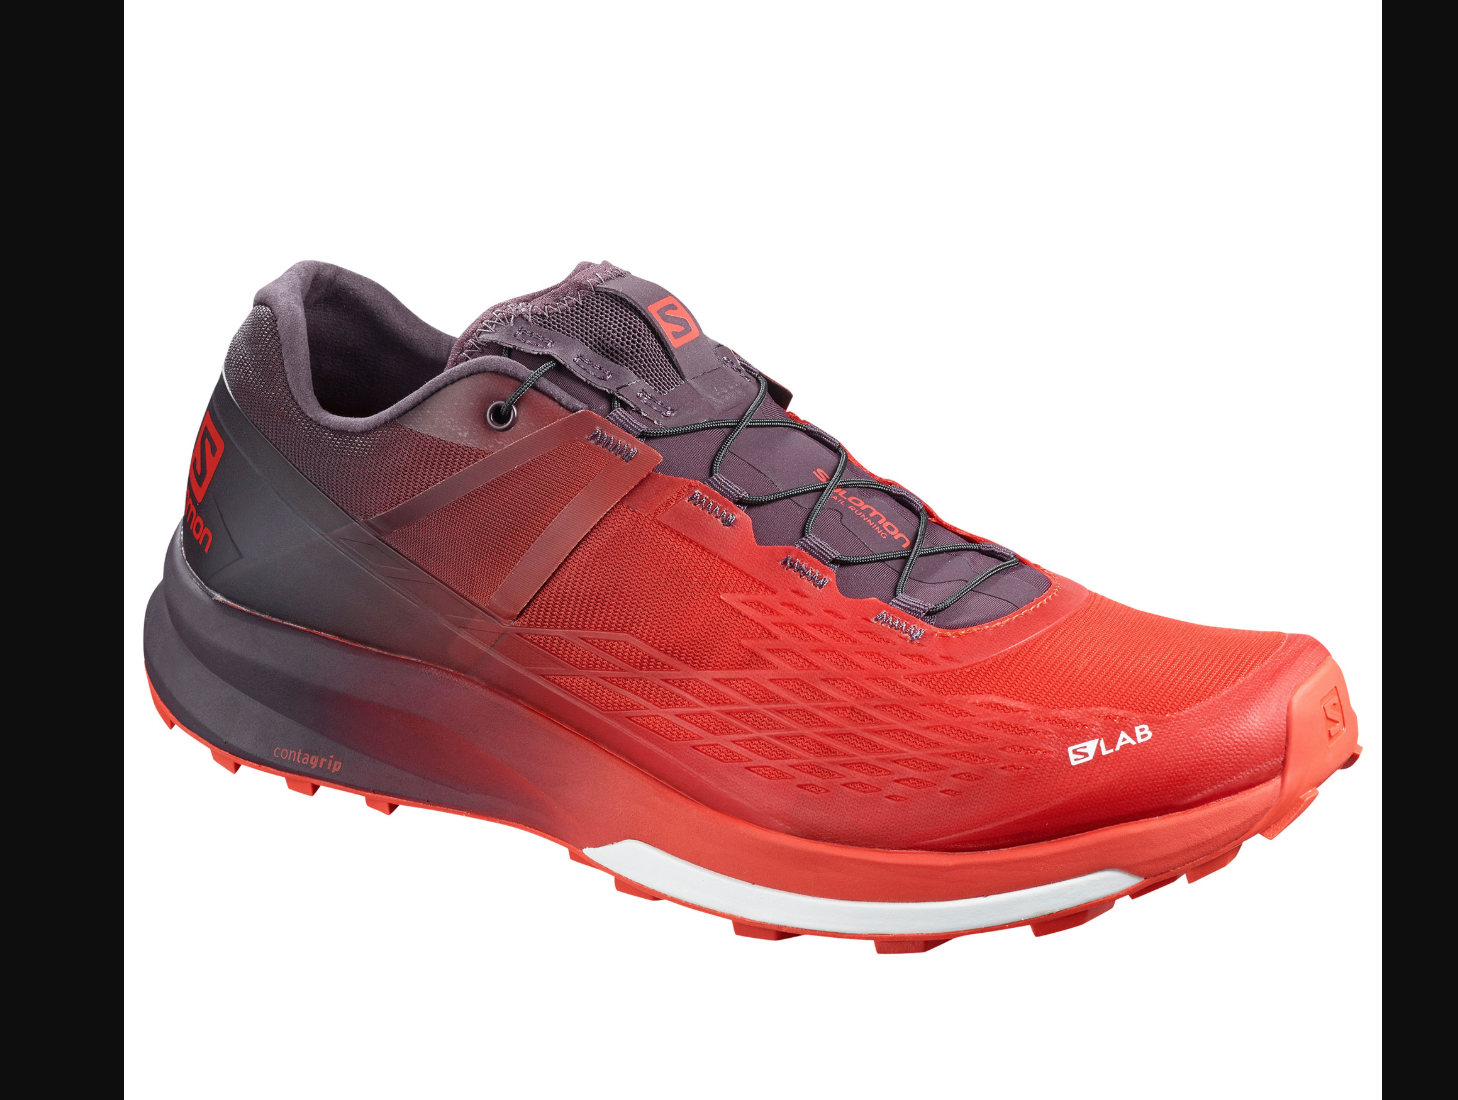 The Best Trail Running Shoes Key Power Sports Singapore  Best Shoes from Salomon 2019